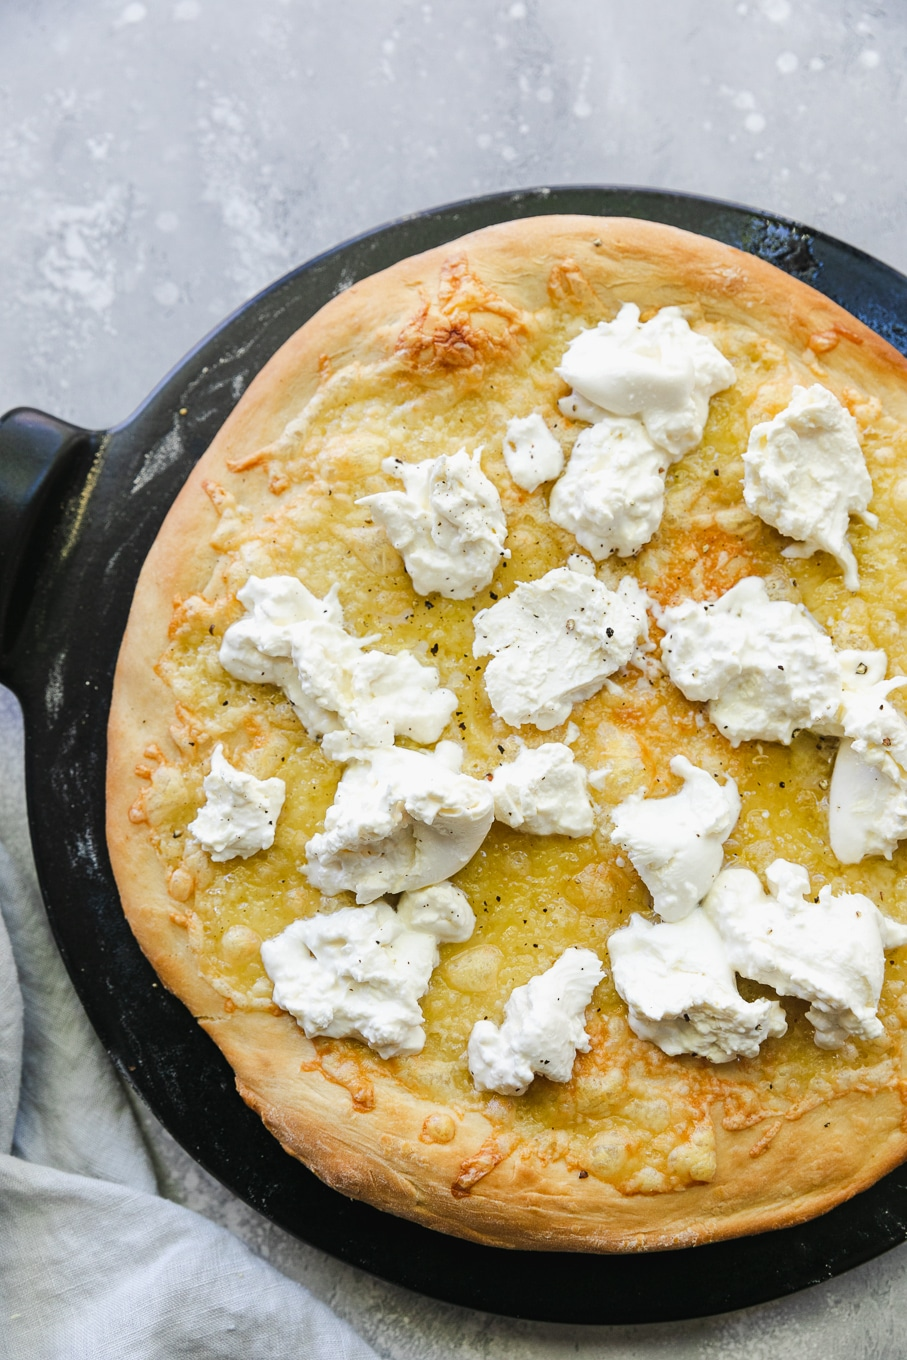 Overhead shot of a baked pizza crust topped with torn pieces of burrata cheese